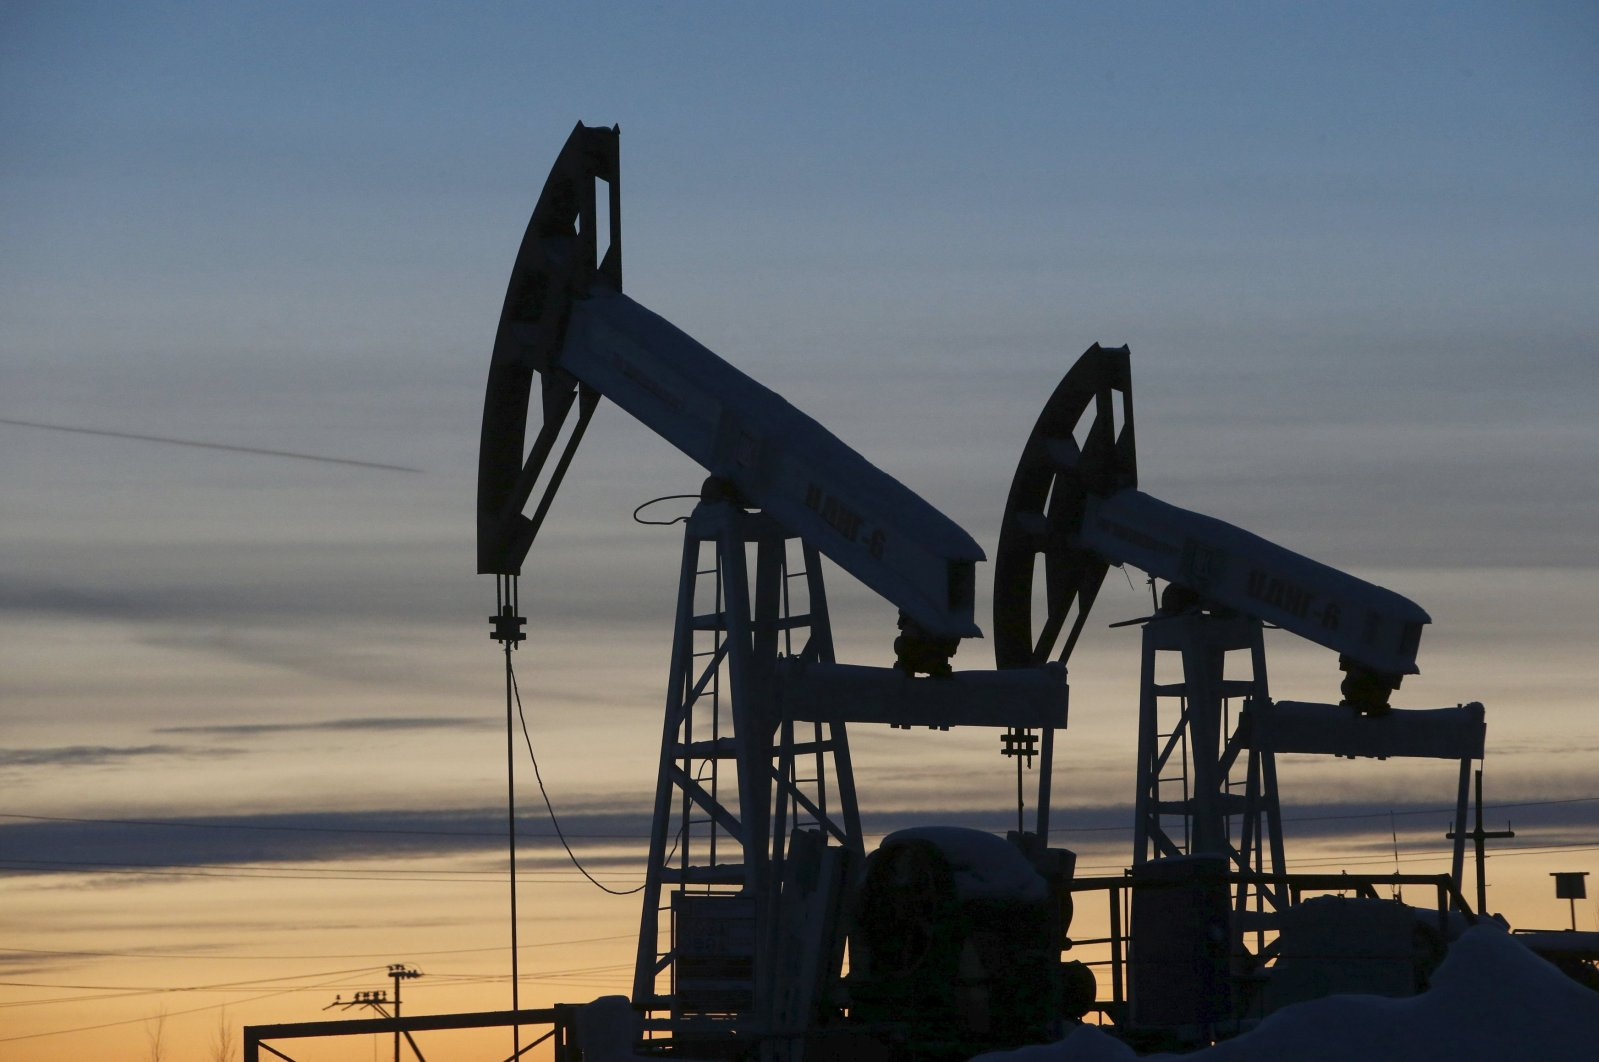 Pump jacks are seen at the Lukeoil-owned Imilorskoye oil field outside the west Siberian city of Kogalym, Russia, Jan. 25, 2016. (Reuters Photo)